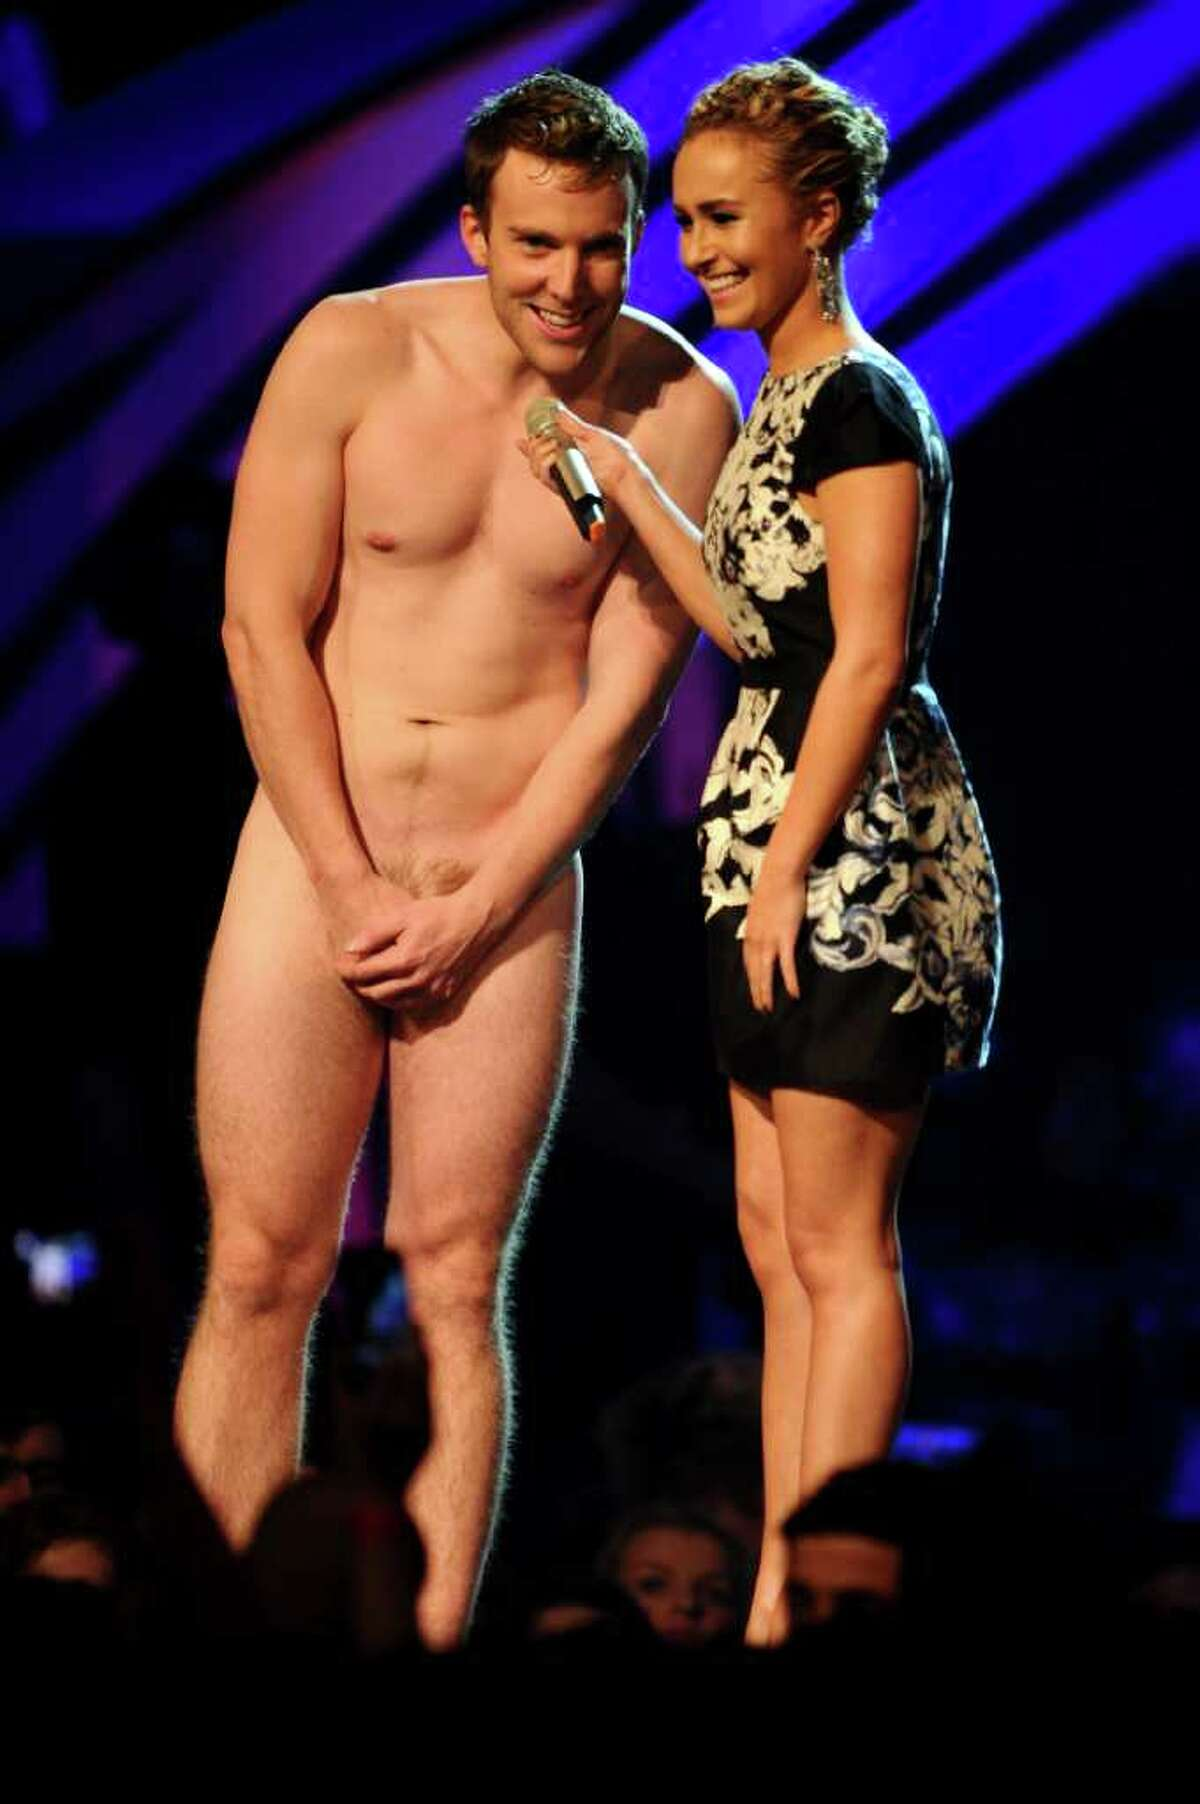 BELFAST, NORTHERN IRELAND - NOVEMBER 06: Actress Hayden Panettiere (R) and naked guest perform onstage during the MTV Europe Music Awards 2011 live show at at the Odyssey Arena on November 6, 2011 in Belfast, Northern Ireland.